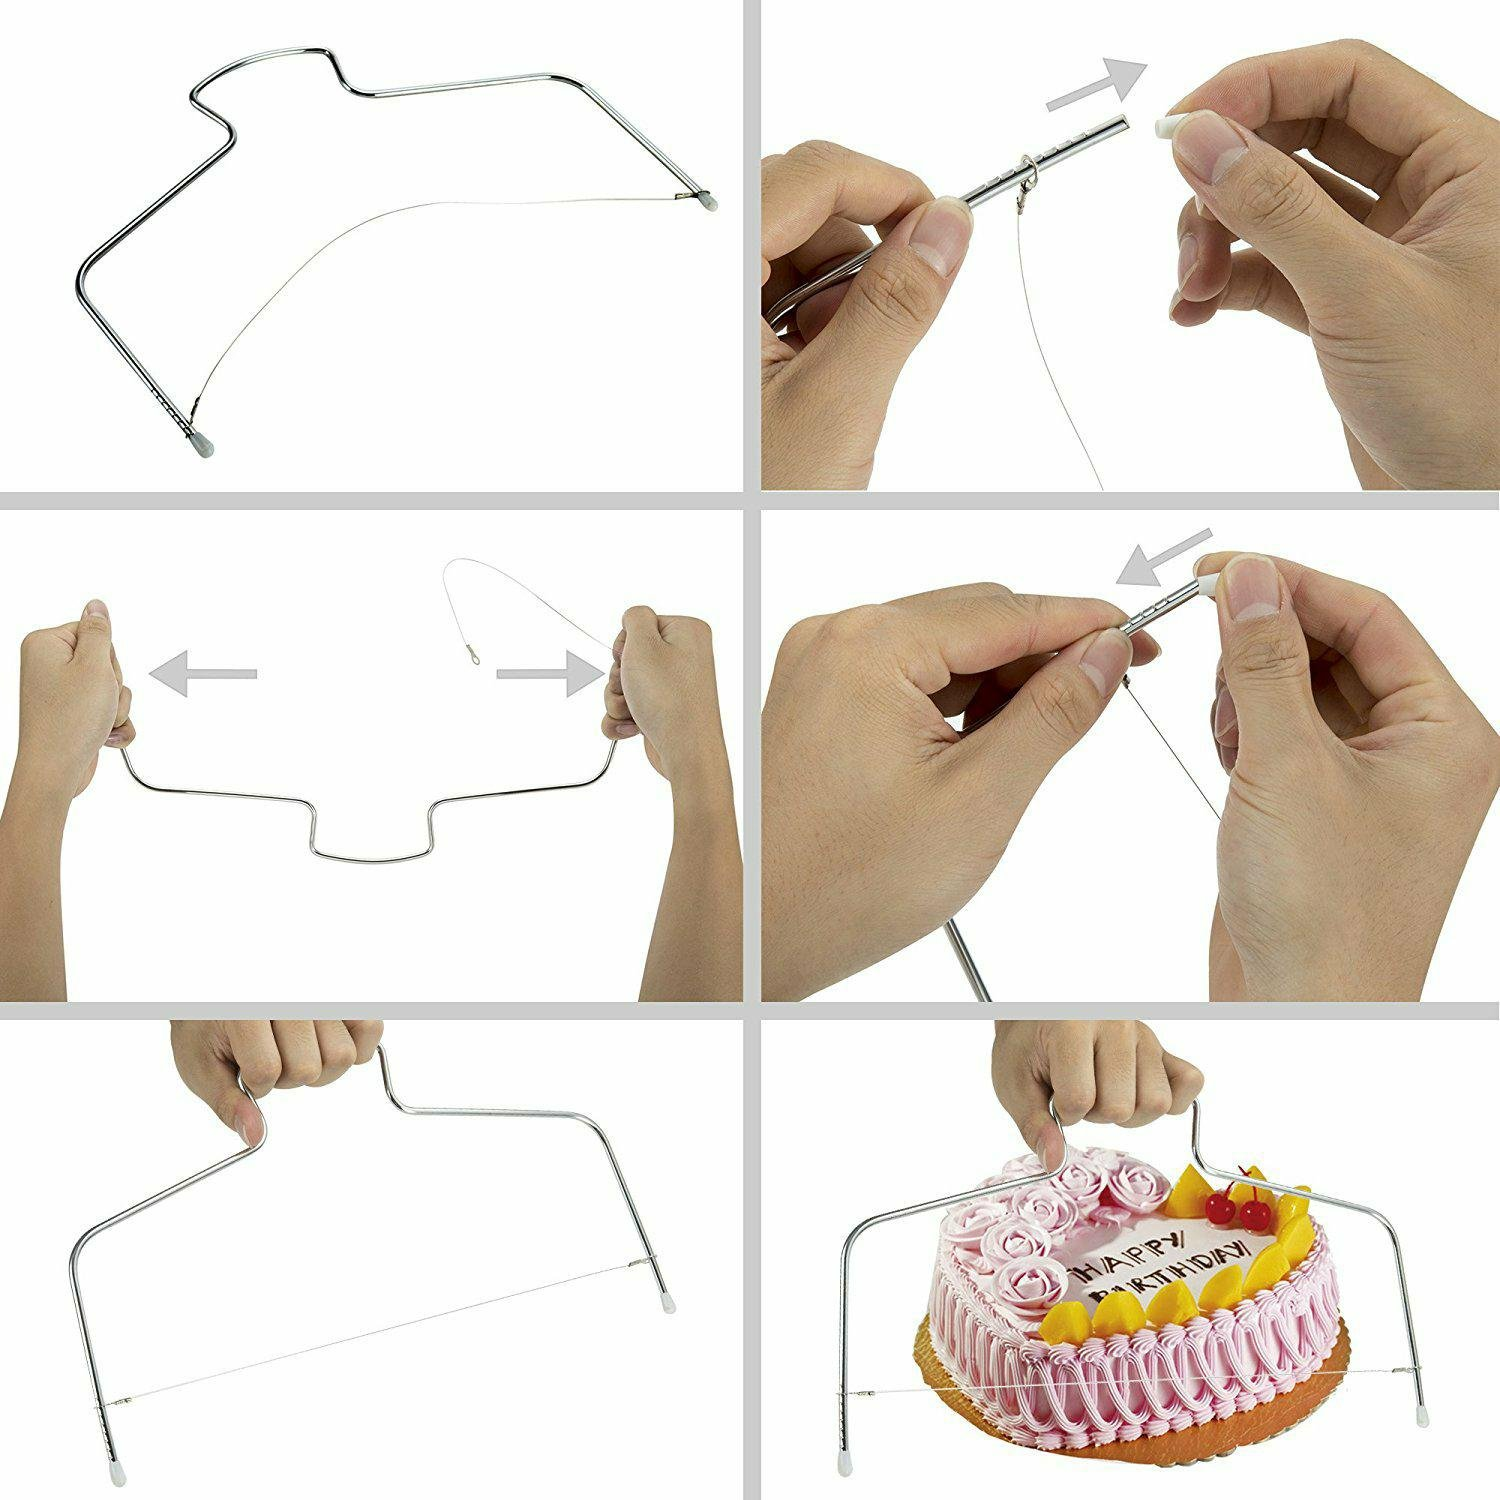 Cake Decorating Supplies - (100 PCS SPECIAL CAKE DECORATING KIT) With 55 PCS Numbered Icing Tips, Cake Rotating Turntable and More Accessories! Create AMAZING Cakes With This Complete Cake Set! by Aleeza Cake Wonders (Image #7)